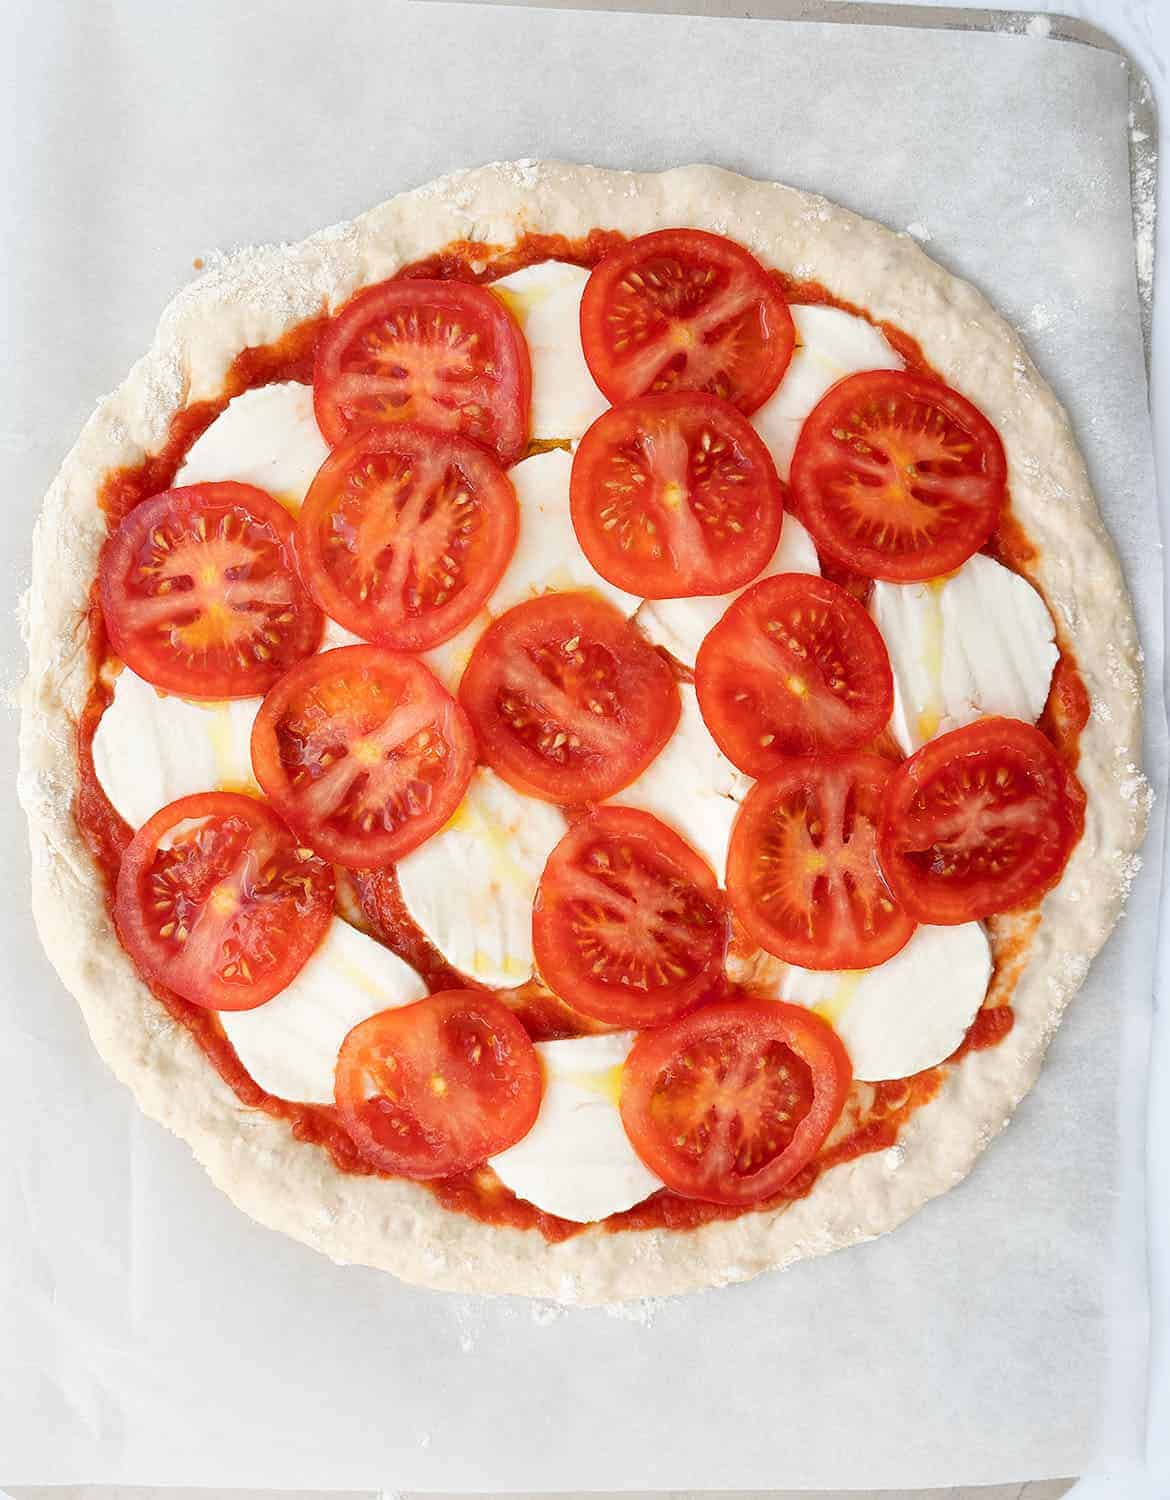 A pizza caprese with slices of tomato and mozzarella before baking.